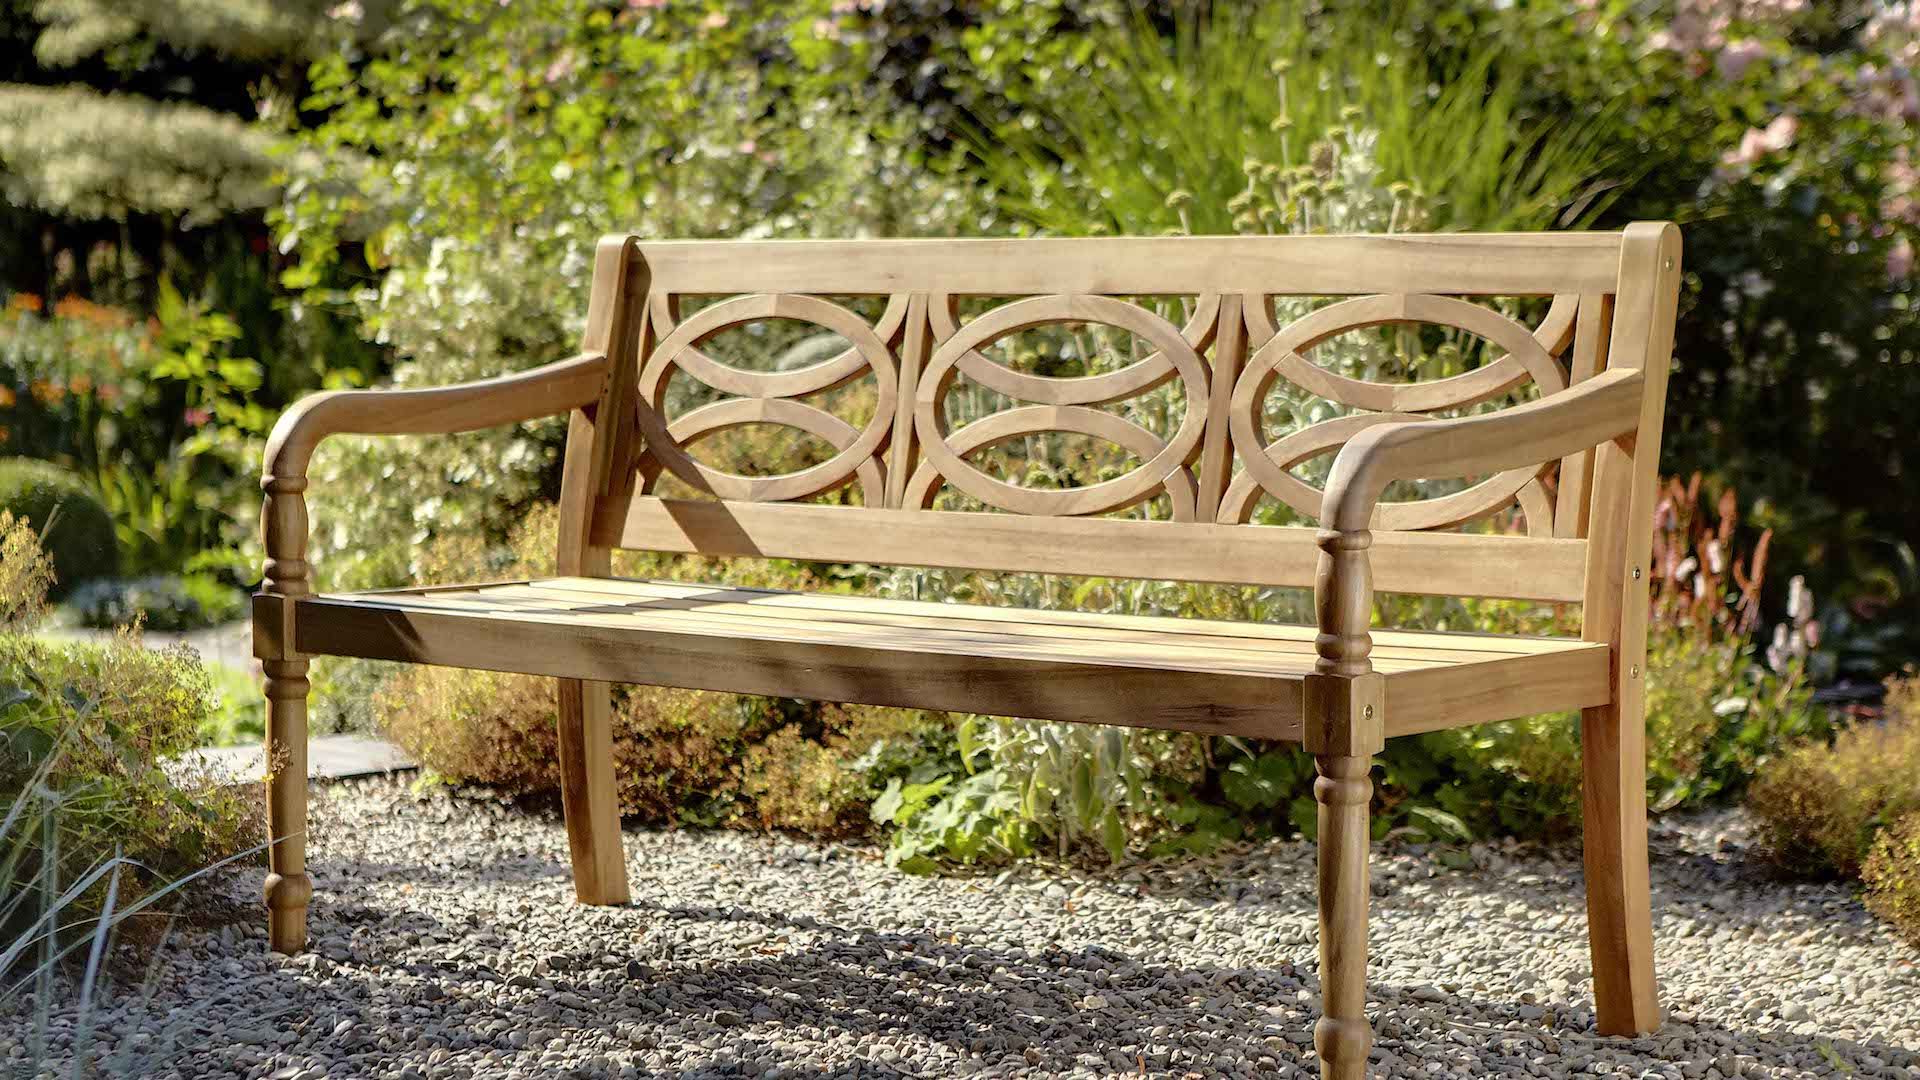 Most Recent Amabel Patio Diamond Wooden Garden Benches Intended For Cleobury 3 Seat Bench – Cleobury – Wood Garden Furniture (View 20 of 30)